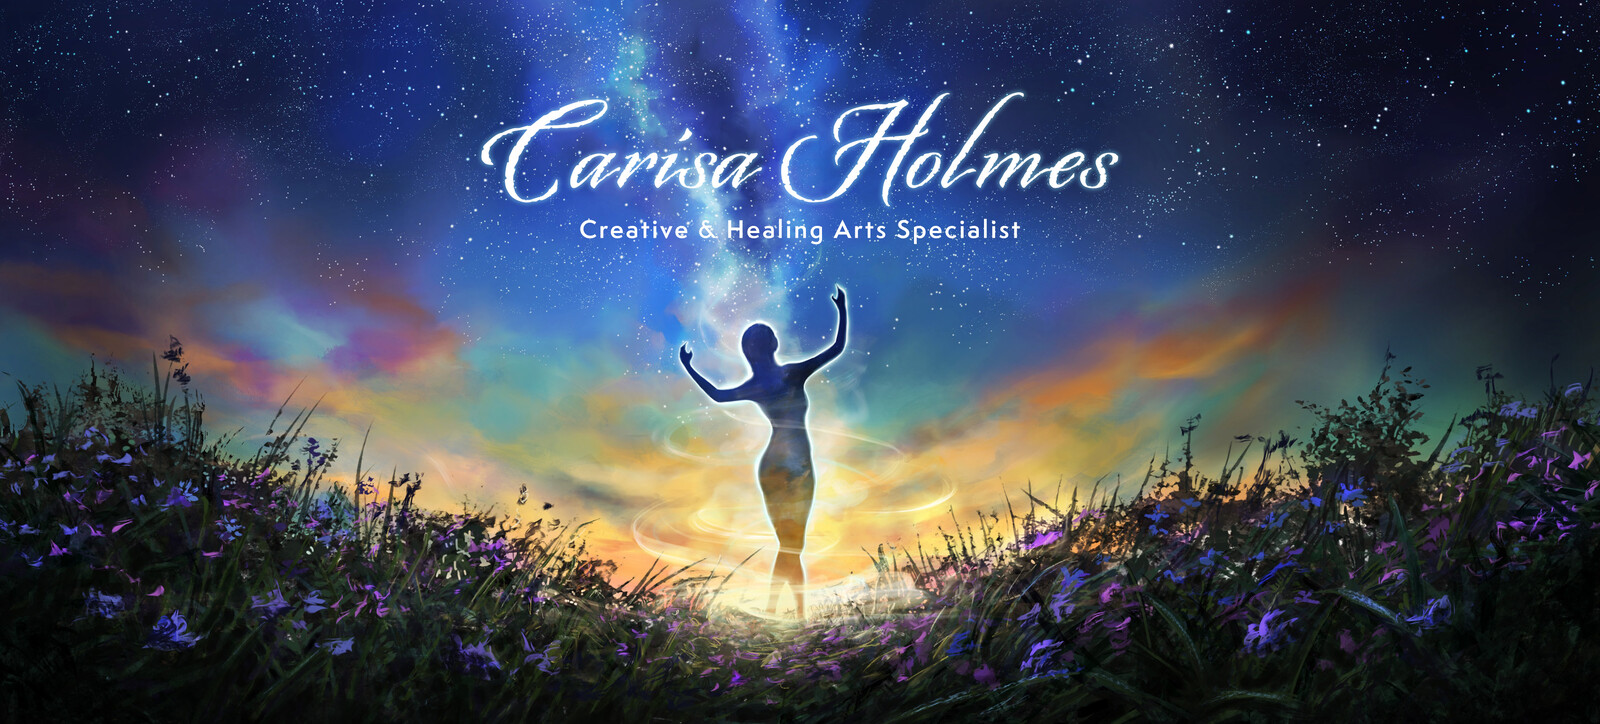 This image is copyrighted by Carisa Holmes Healing and Creative Arts Specialist.